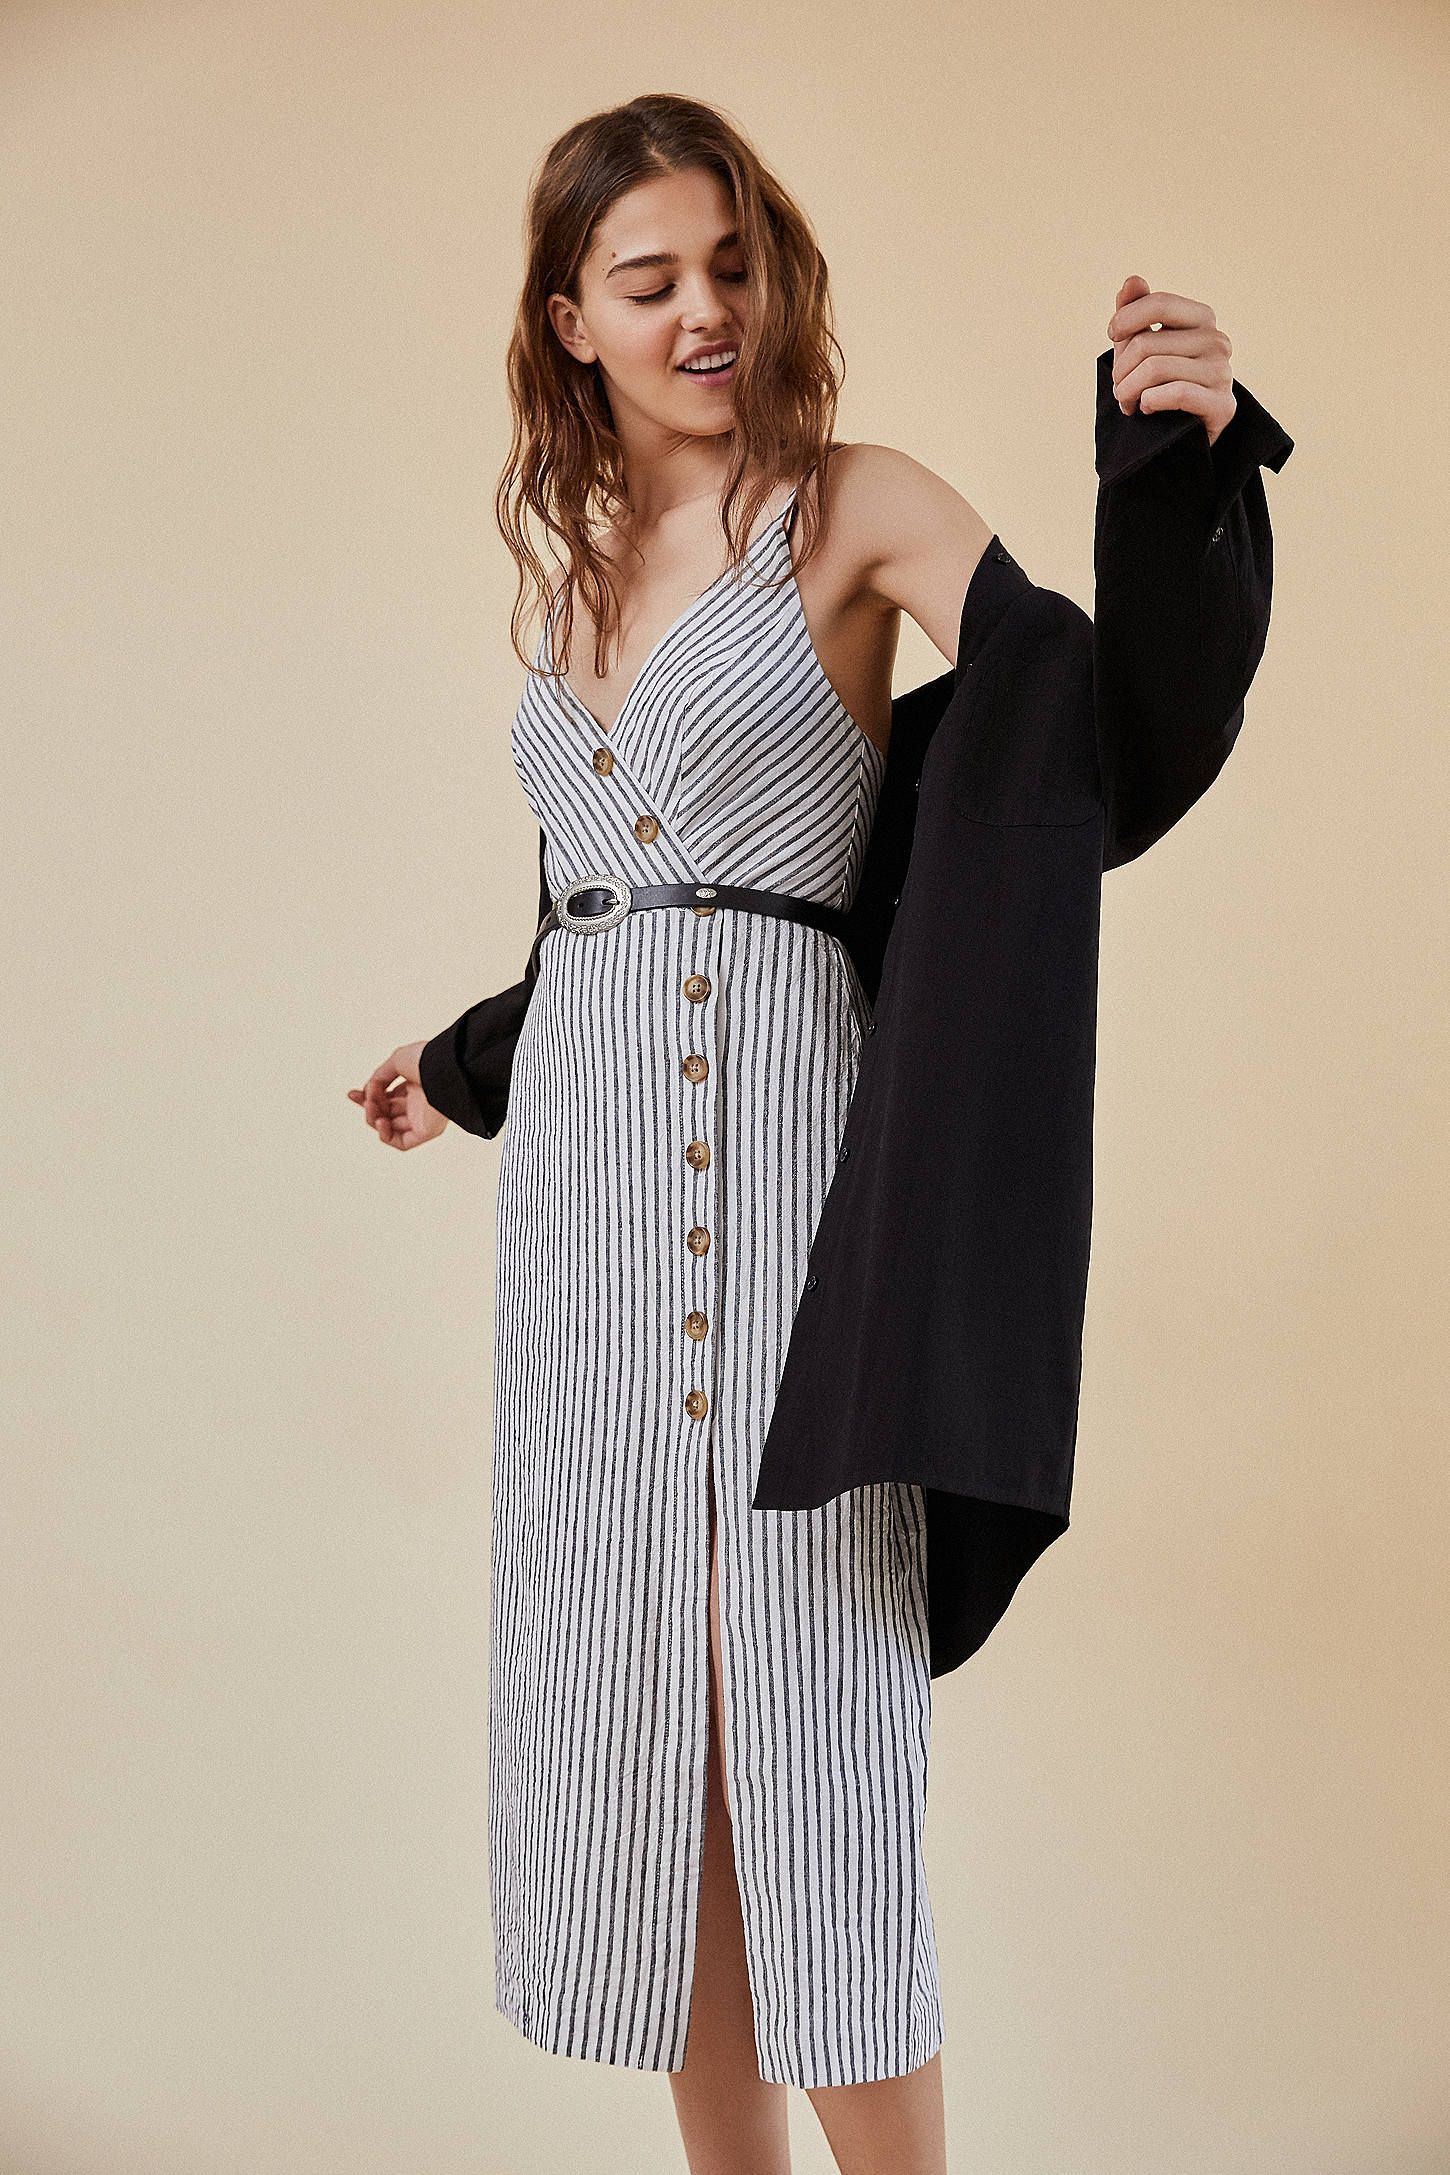 1a6a379c003 Shop UO Amber Button-Down Linen Midi Dress at Urban Outfitters today. We  carry all the latest styles